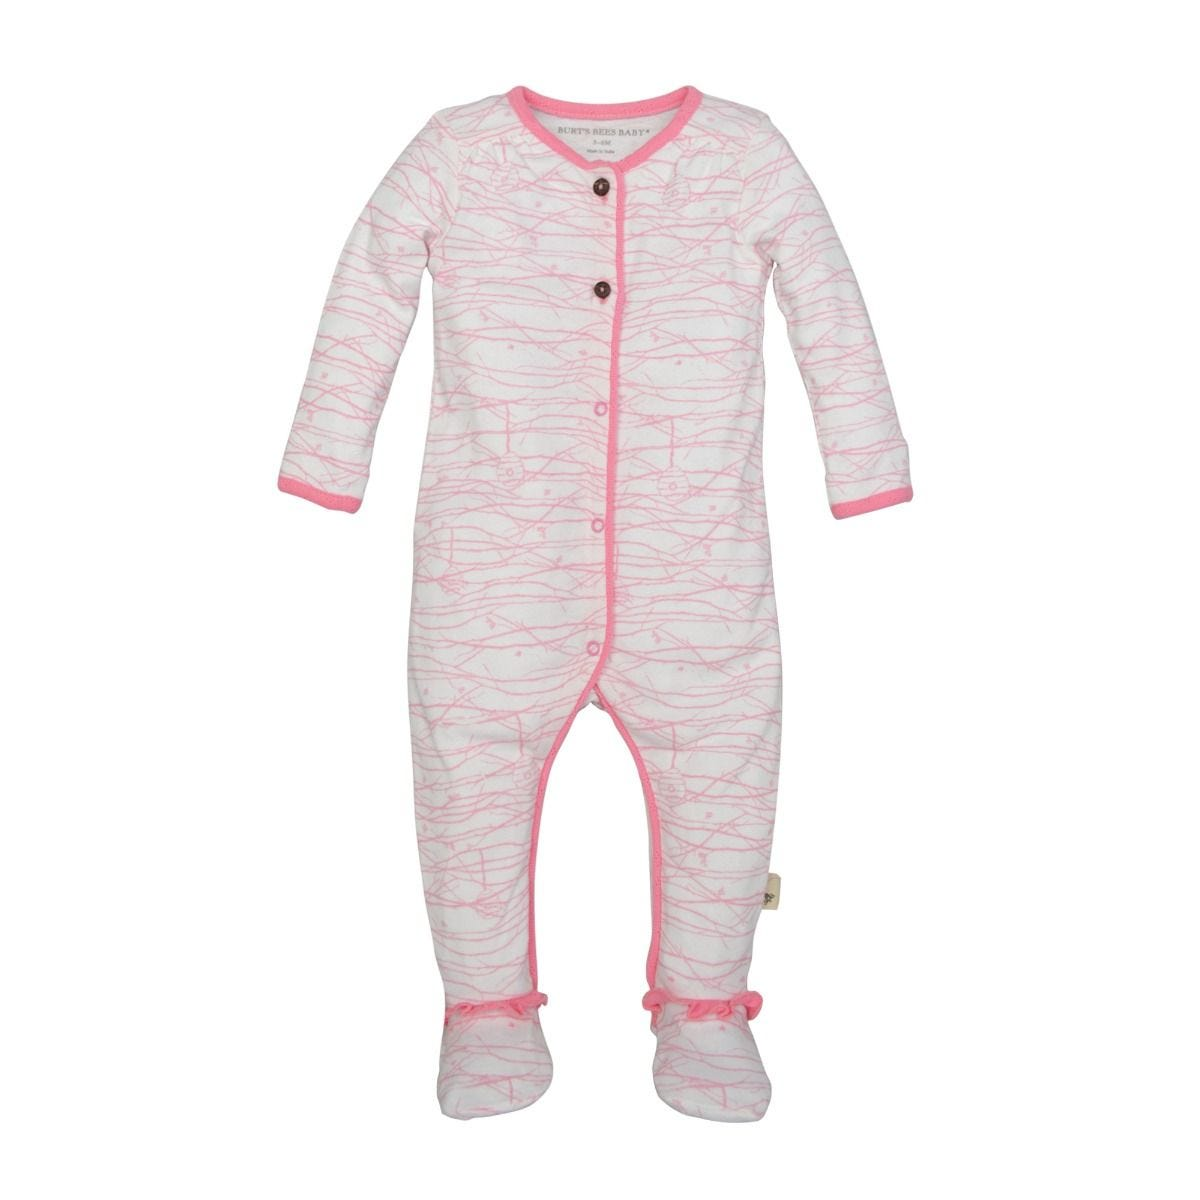 aef8f235c Autumn Trees Organic Pink Baby Girls Footed Romper   Hat Set ...